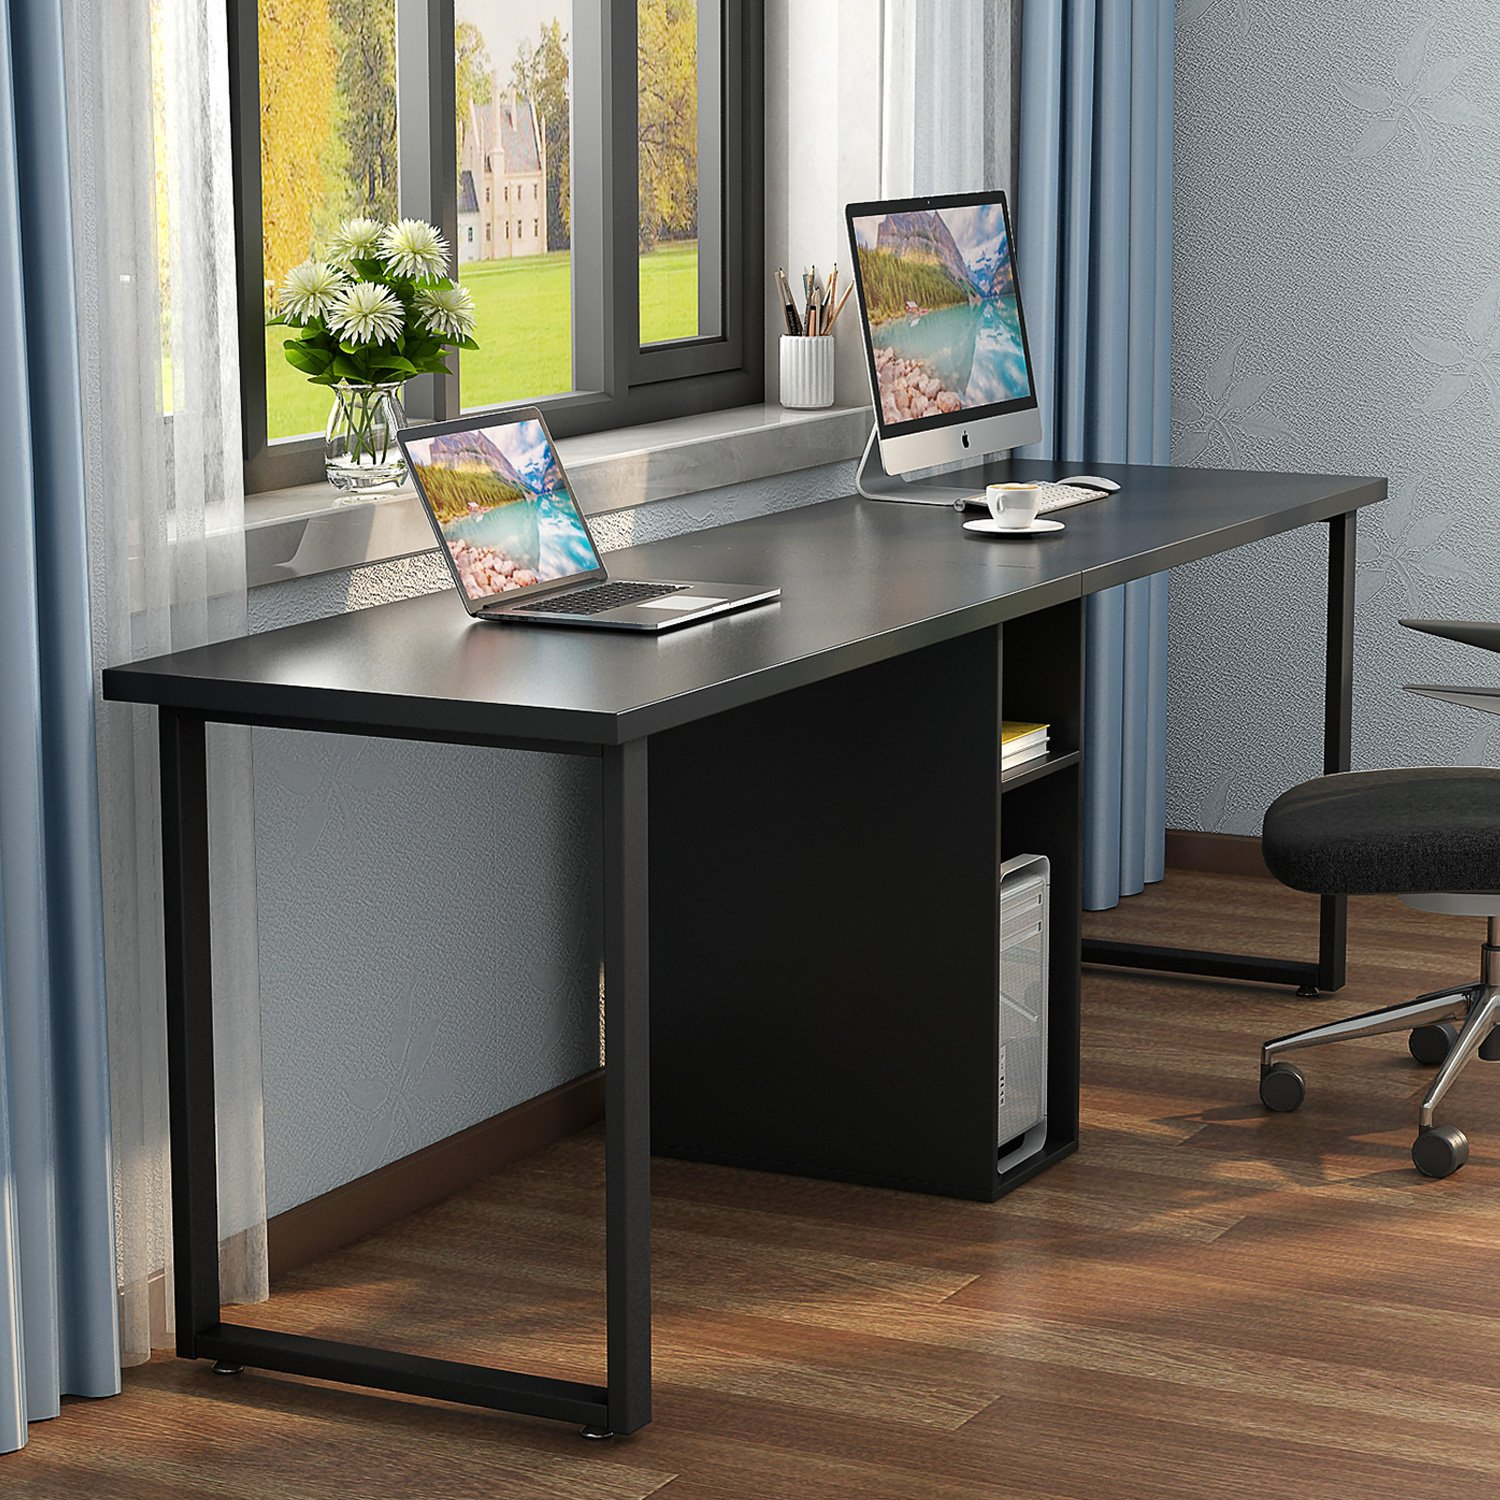 Cheap 2 Person Office Desk Find 2 Person Office Desk Deals On Line At Alibaba Com